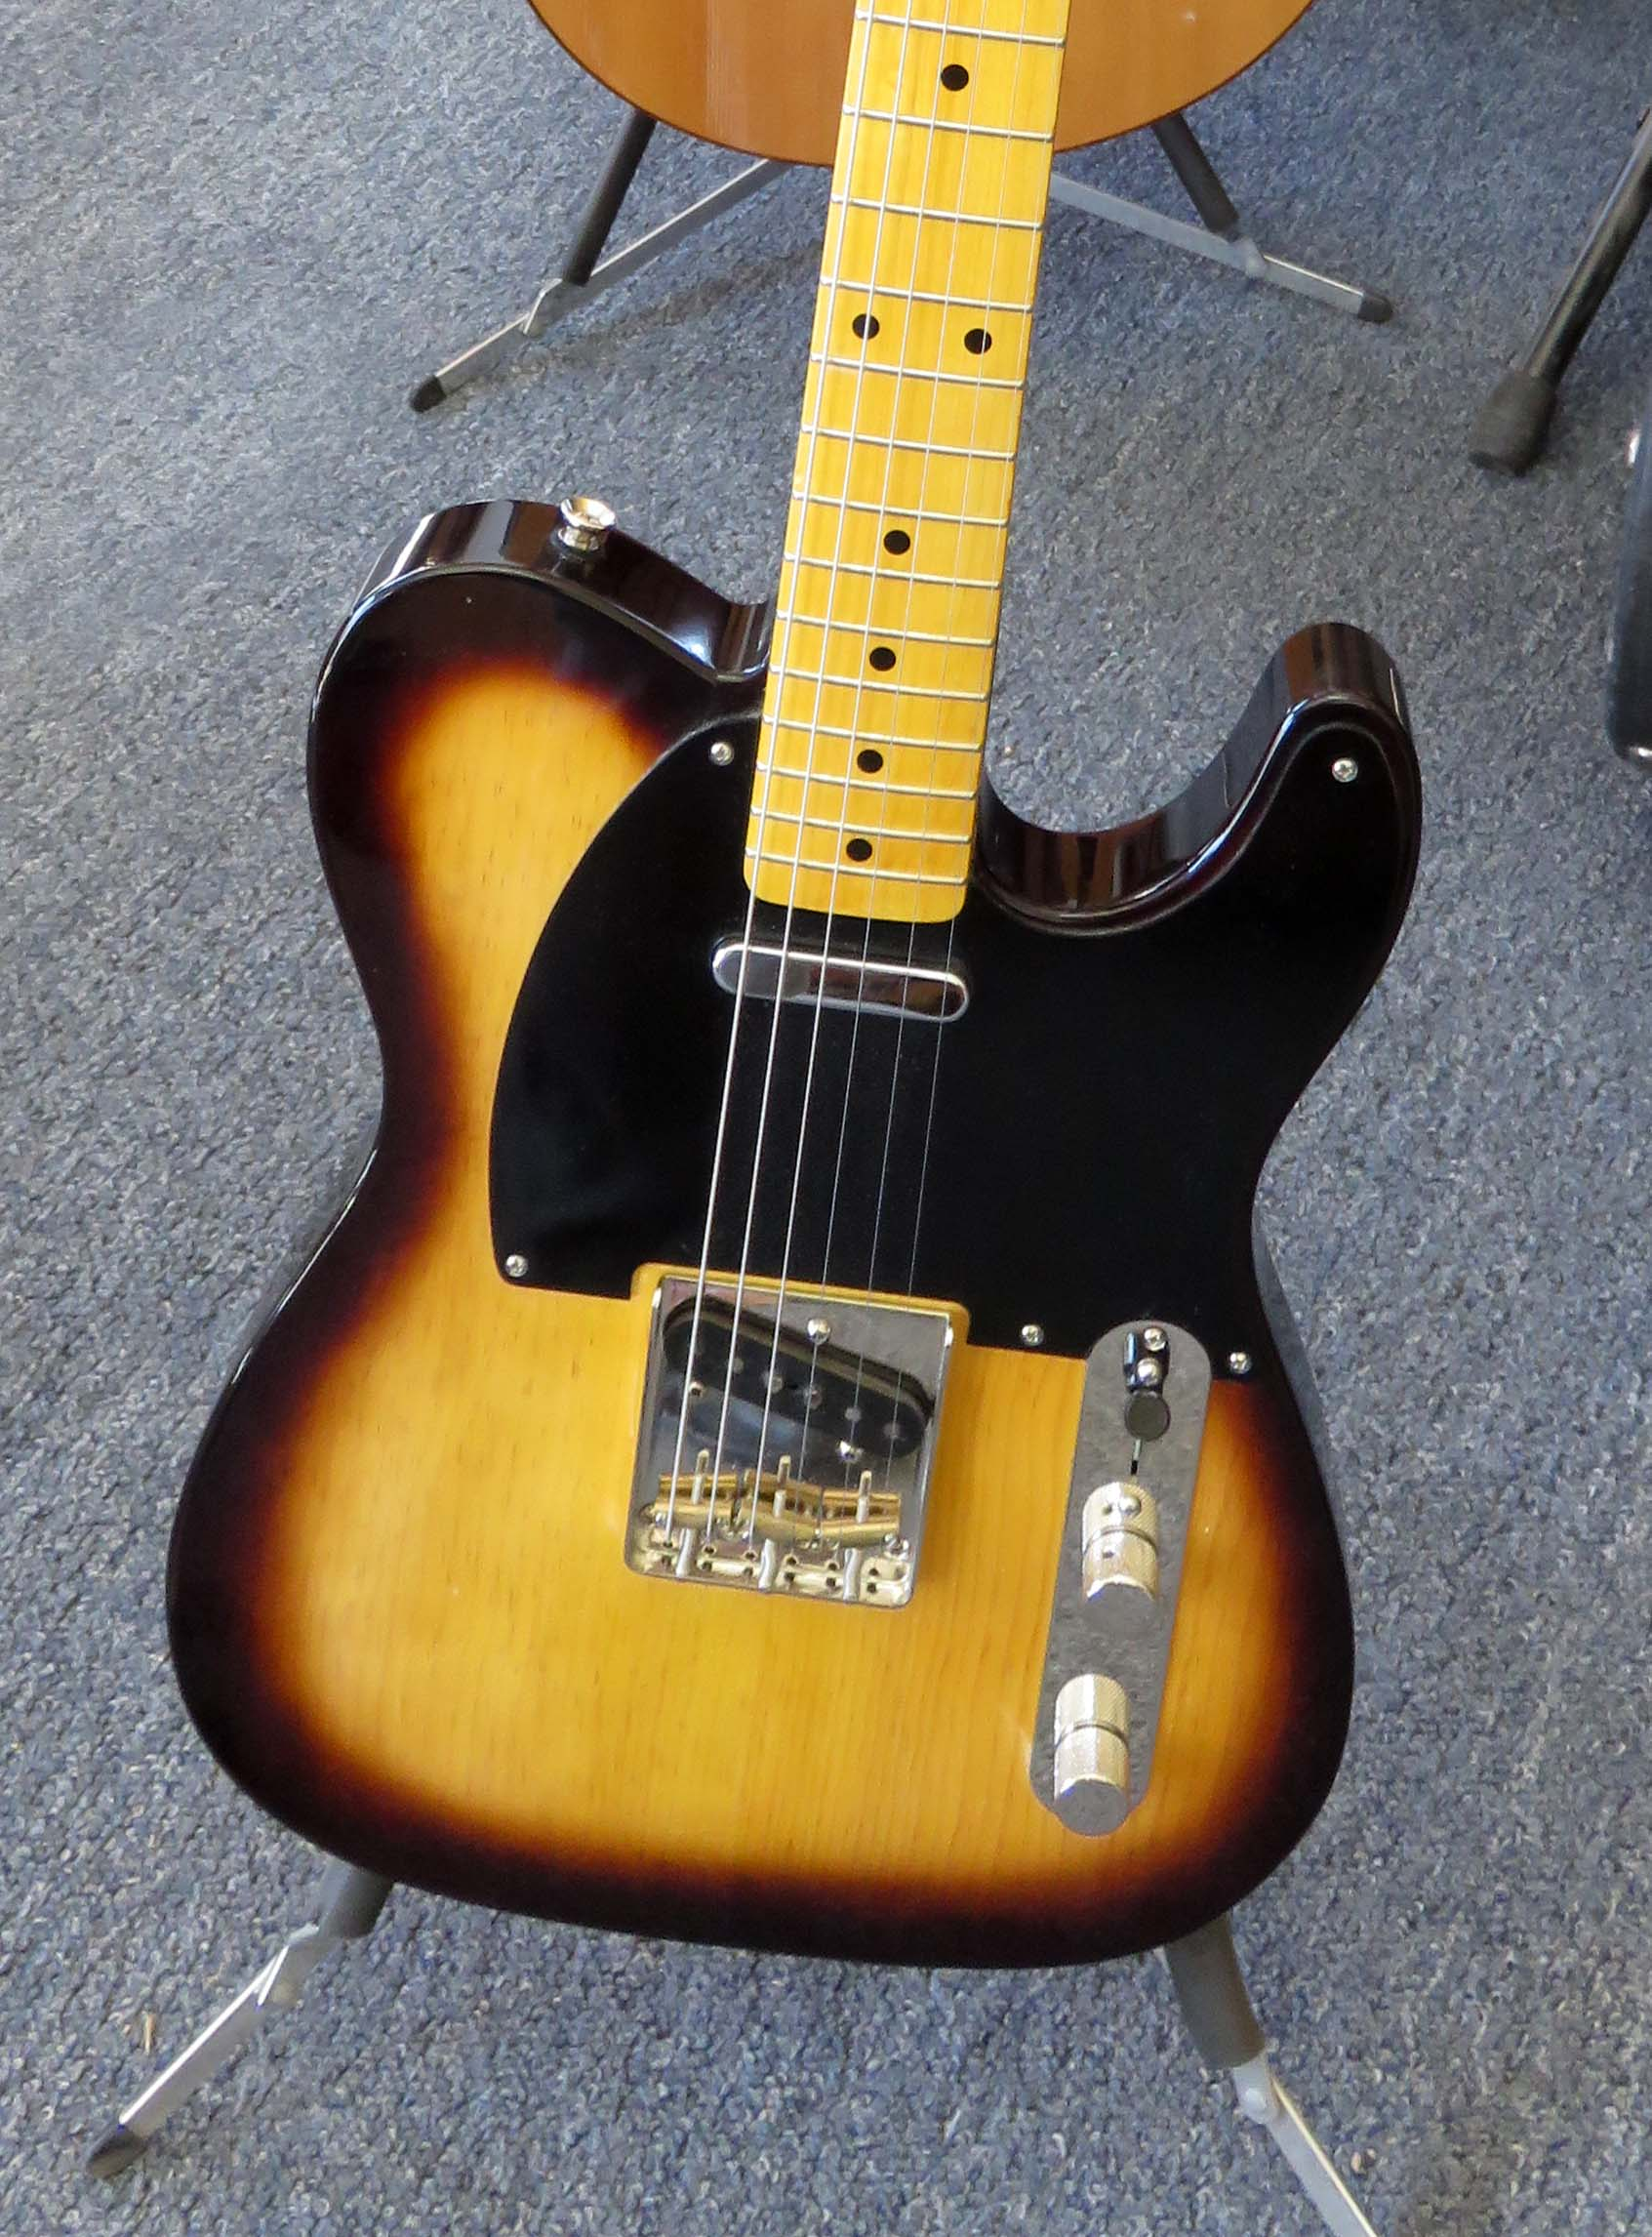 Electric guitar from Heart City Guitars in Loveland, Colorao